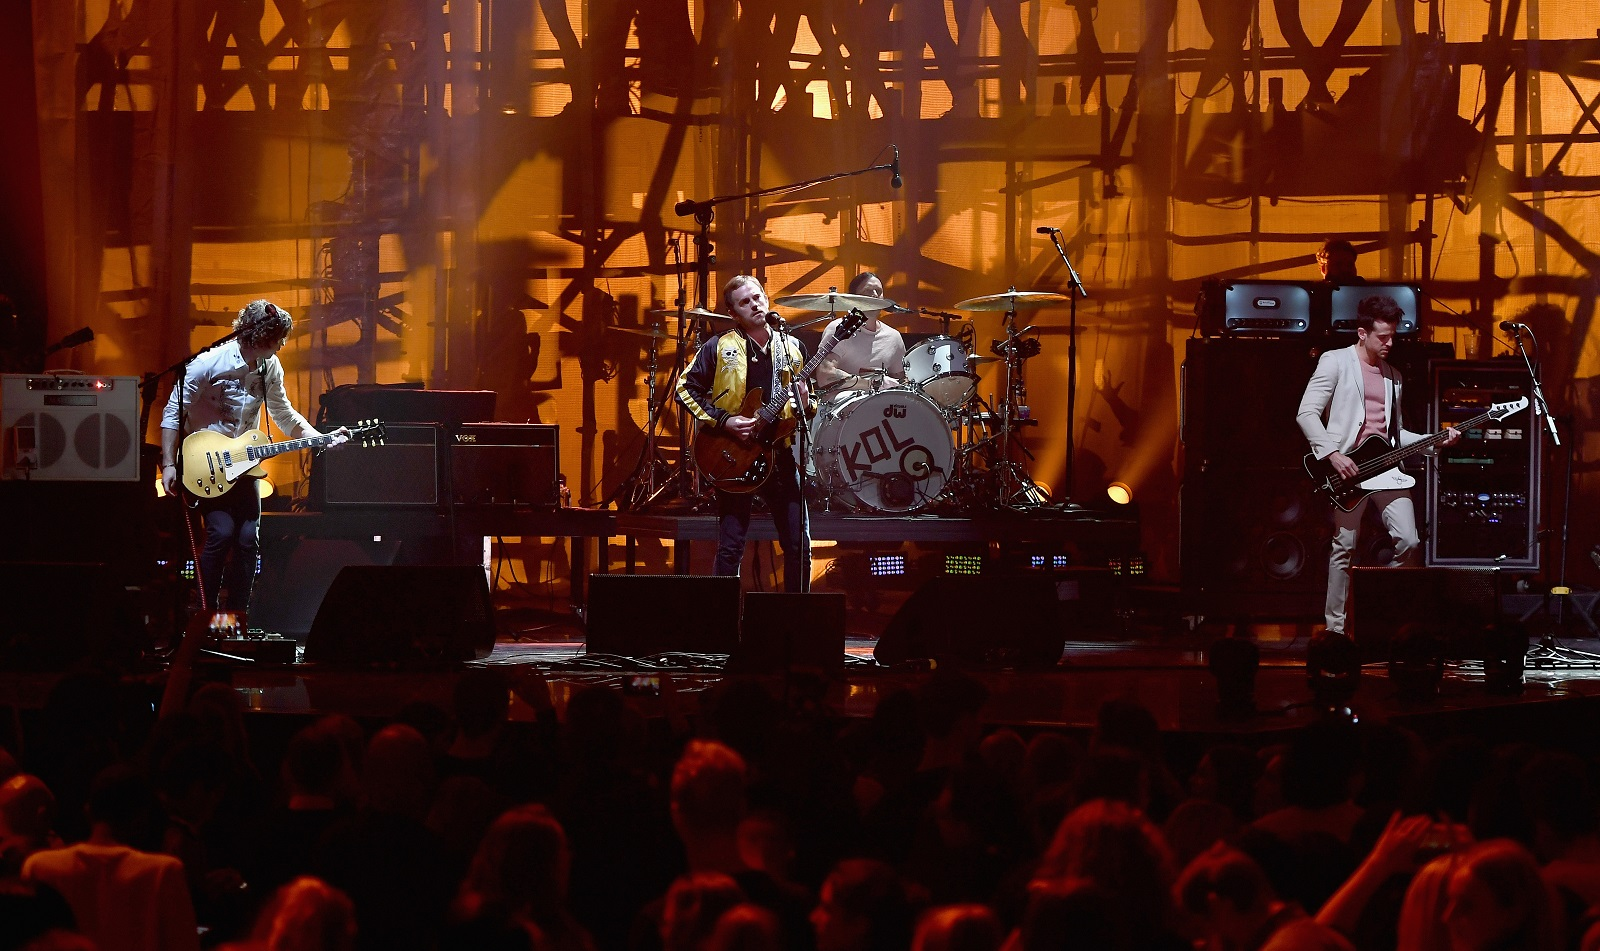 Kings of Leon, pictured performing in the Netherlands in 2016, have announced a Darien Lake date for this summer. (Getty Images)